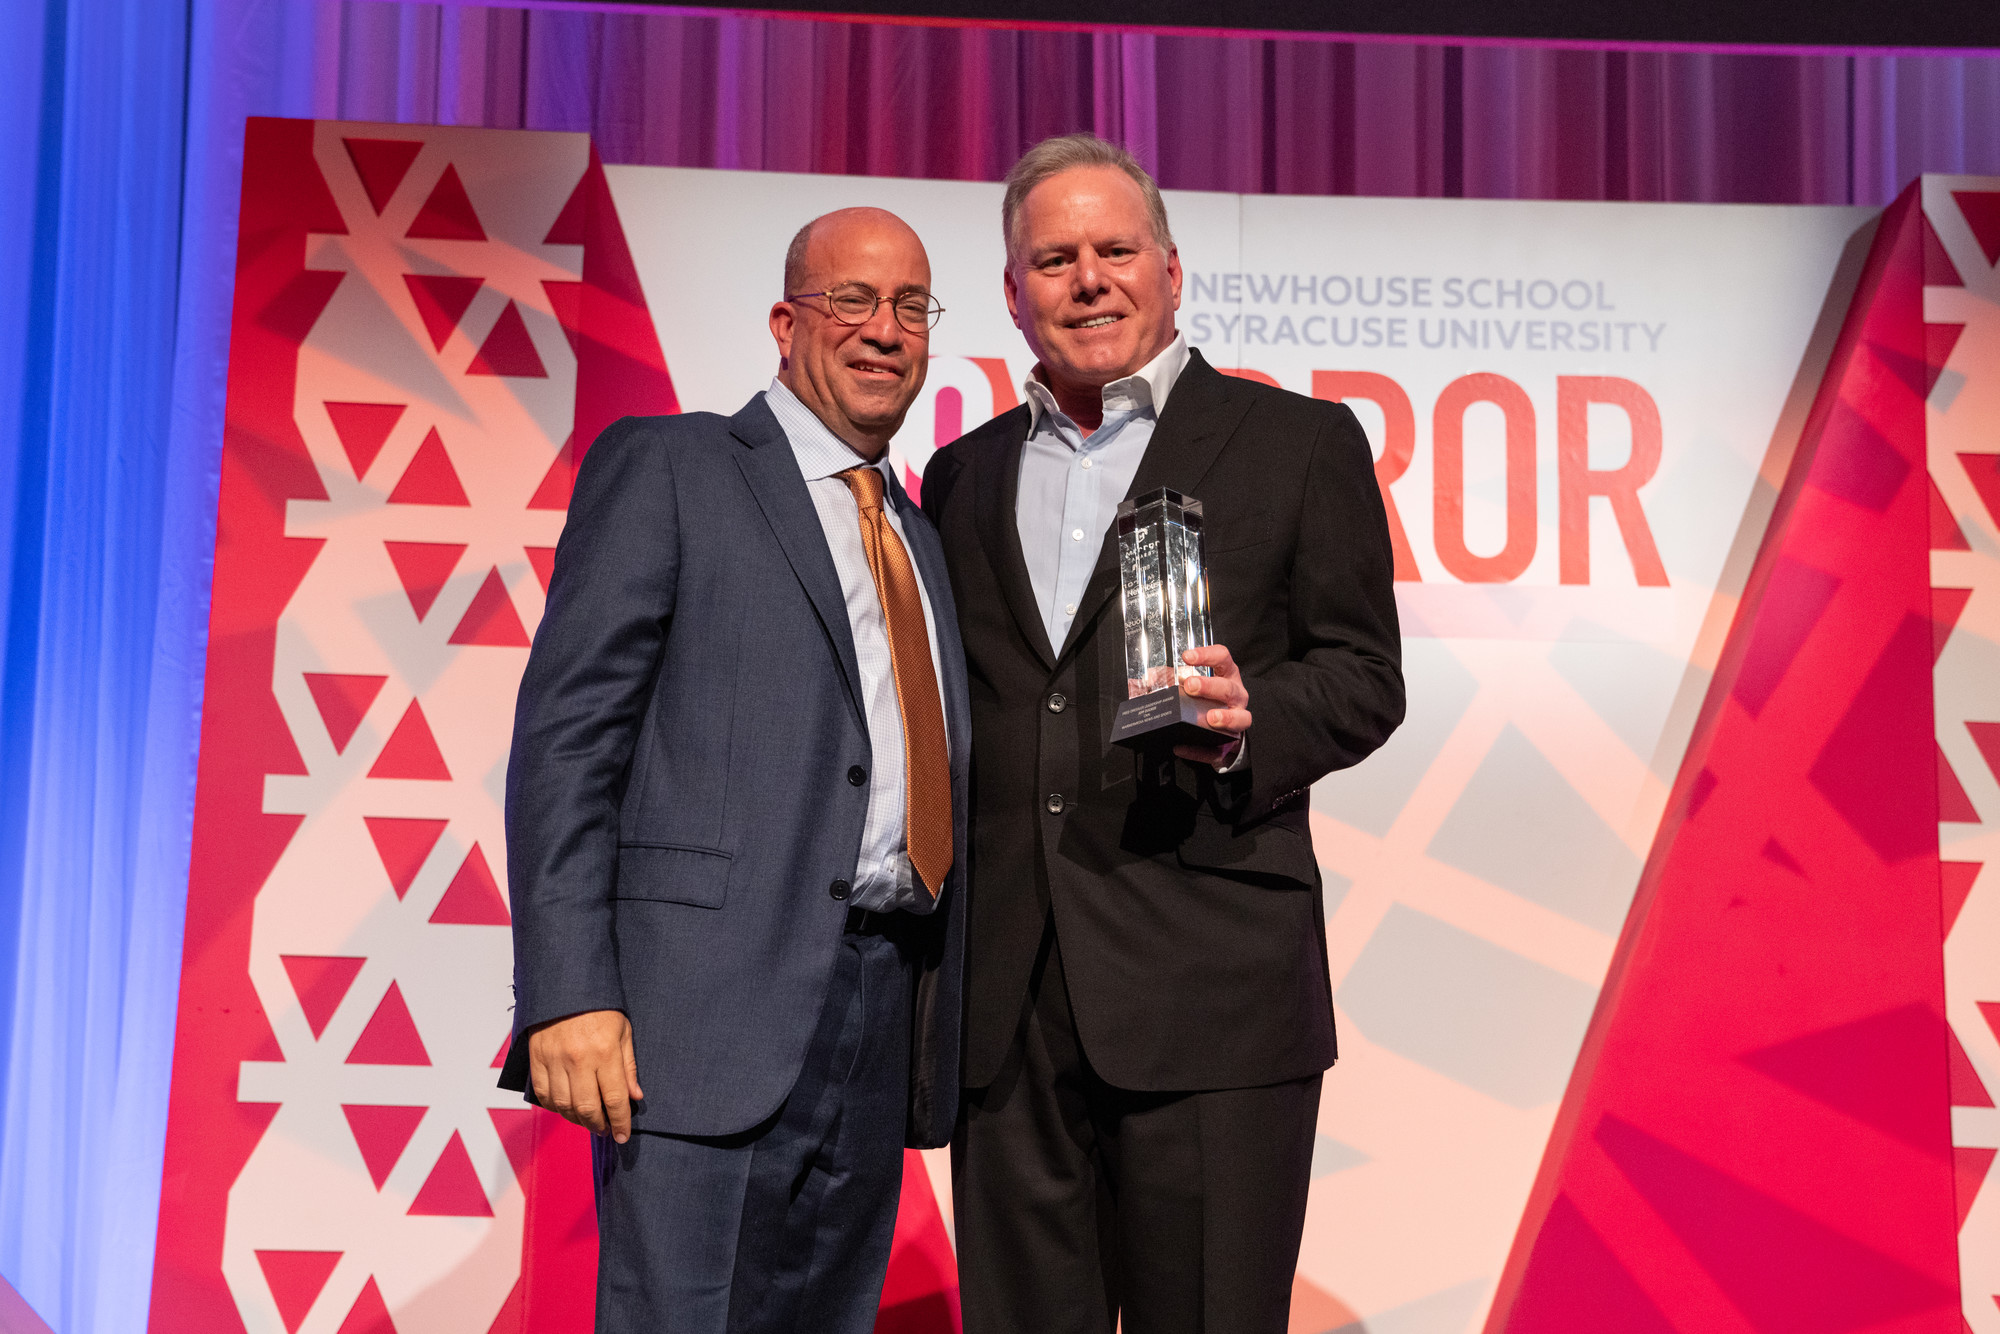 Discovery president and CEO David Zaslav (right) presents the Dressler Award to Jeff Zucker